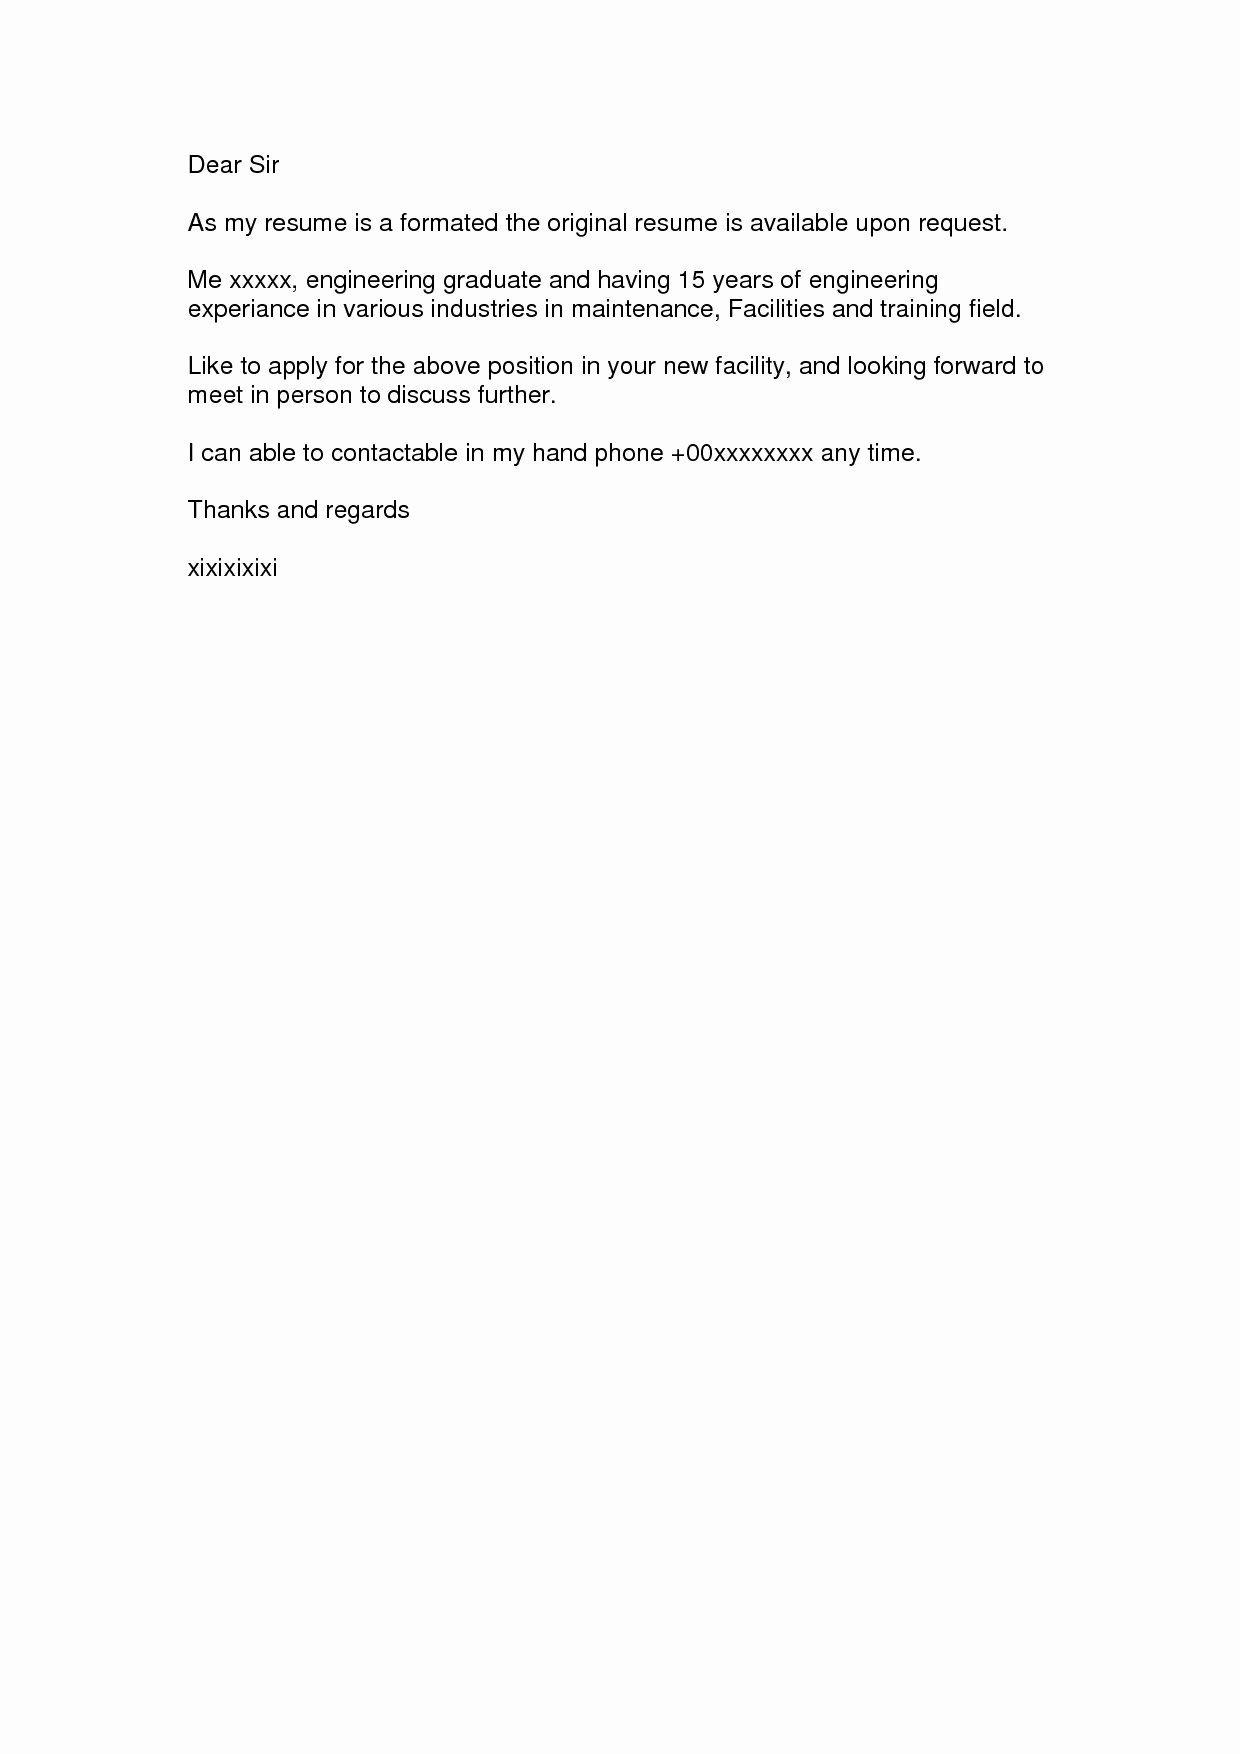 Sample Of Simple Cover Letter New 10 Best Of Basic Cover Letter for Resume Sample